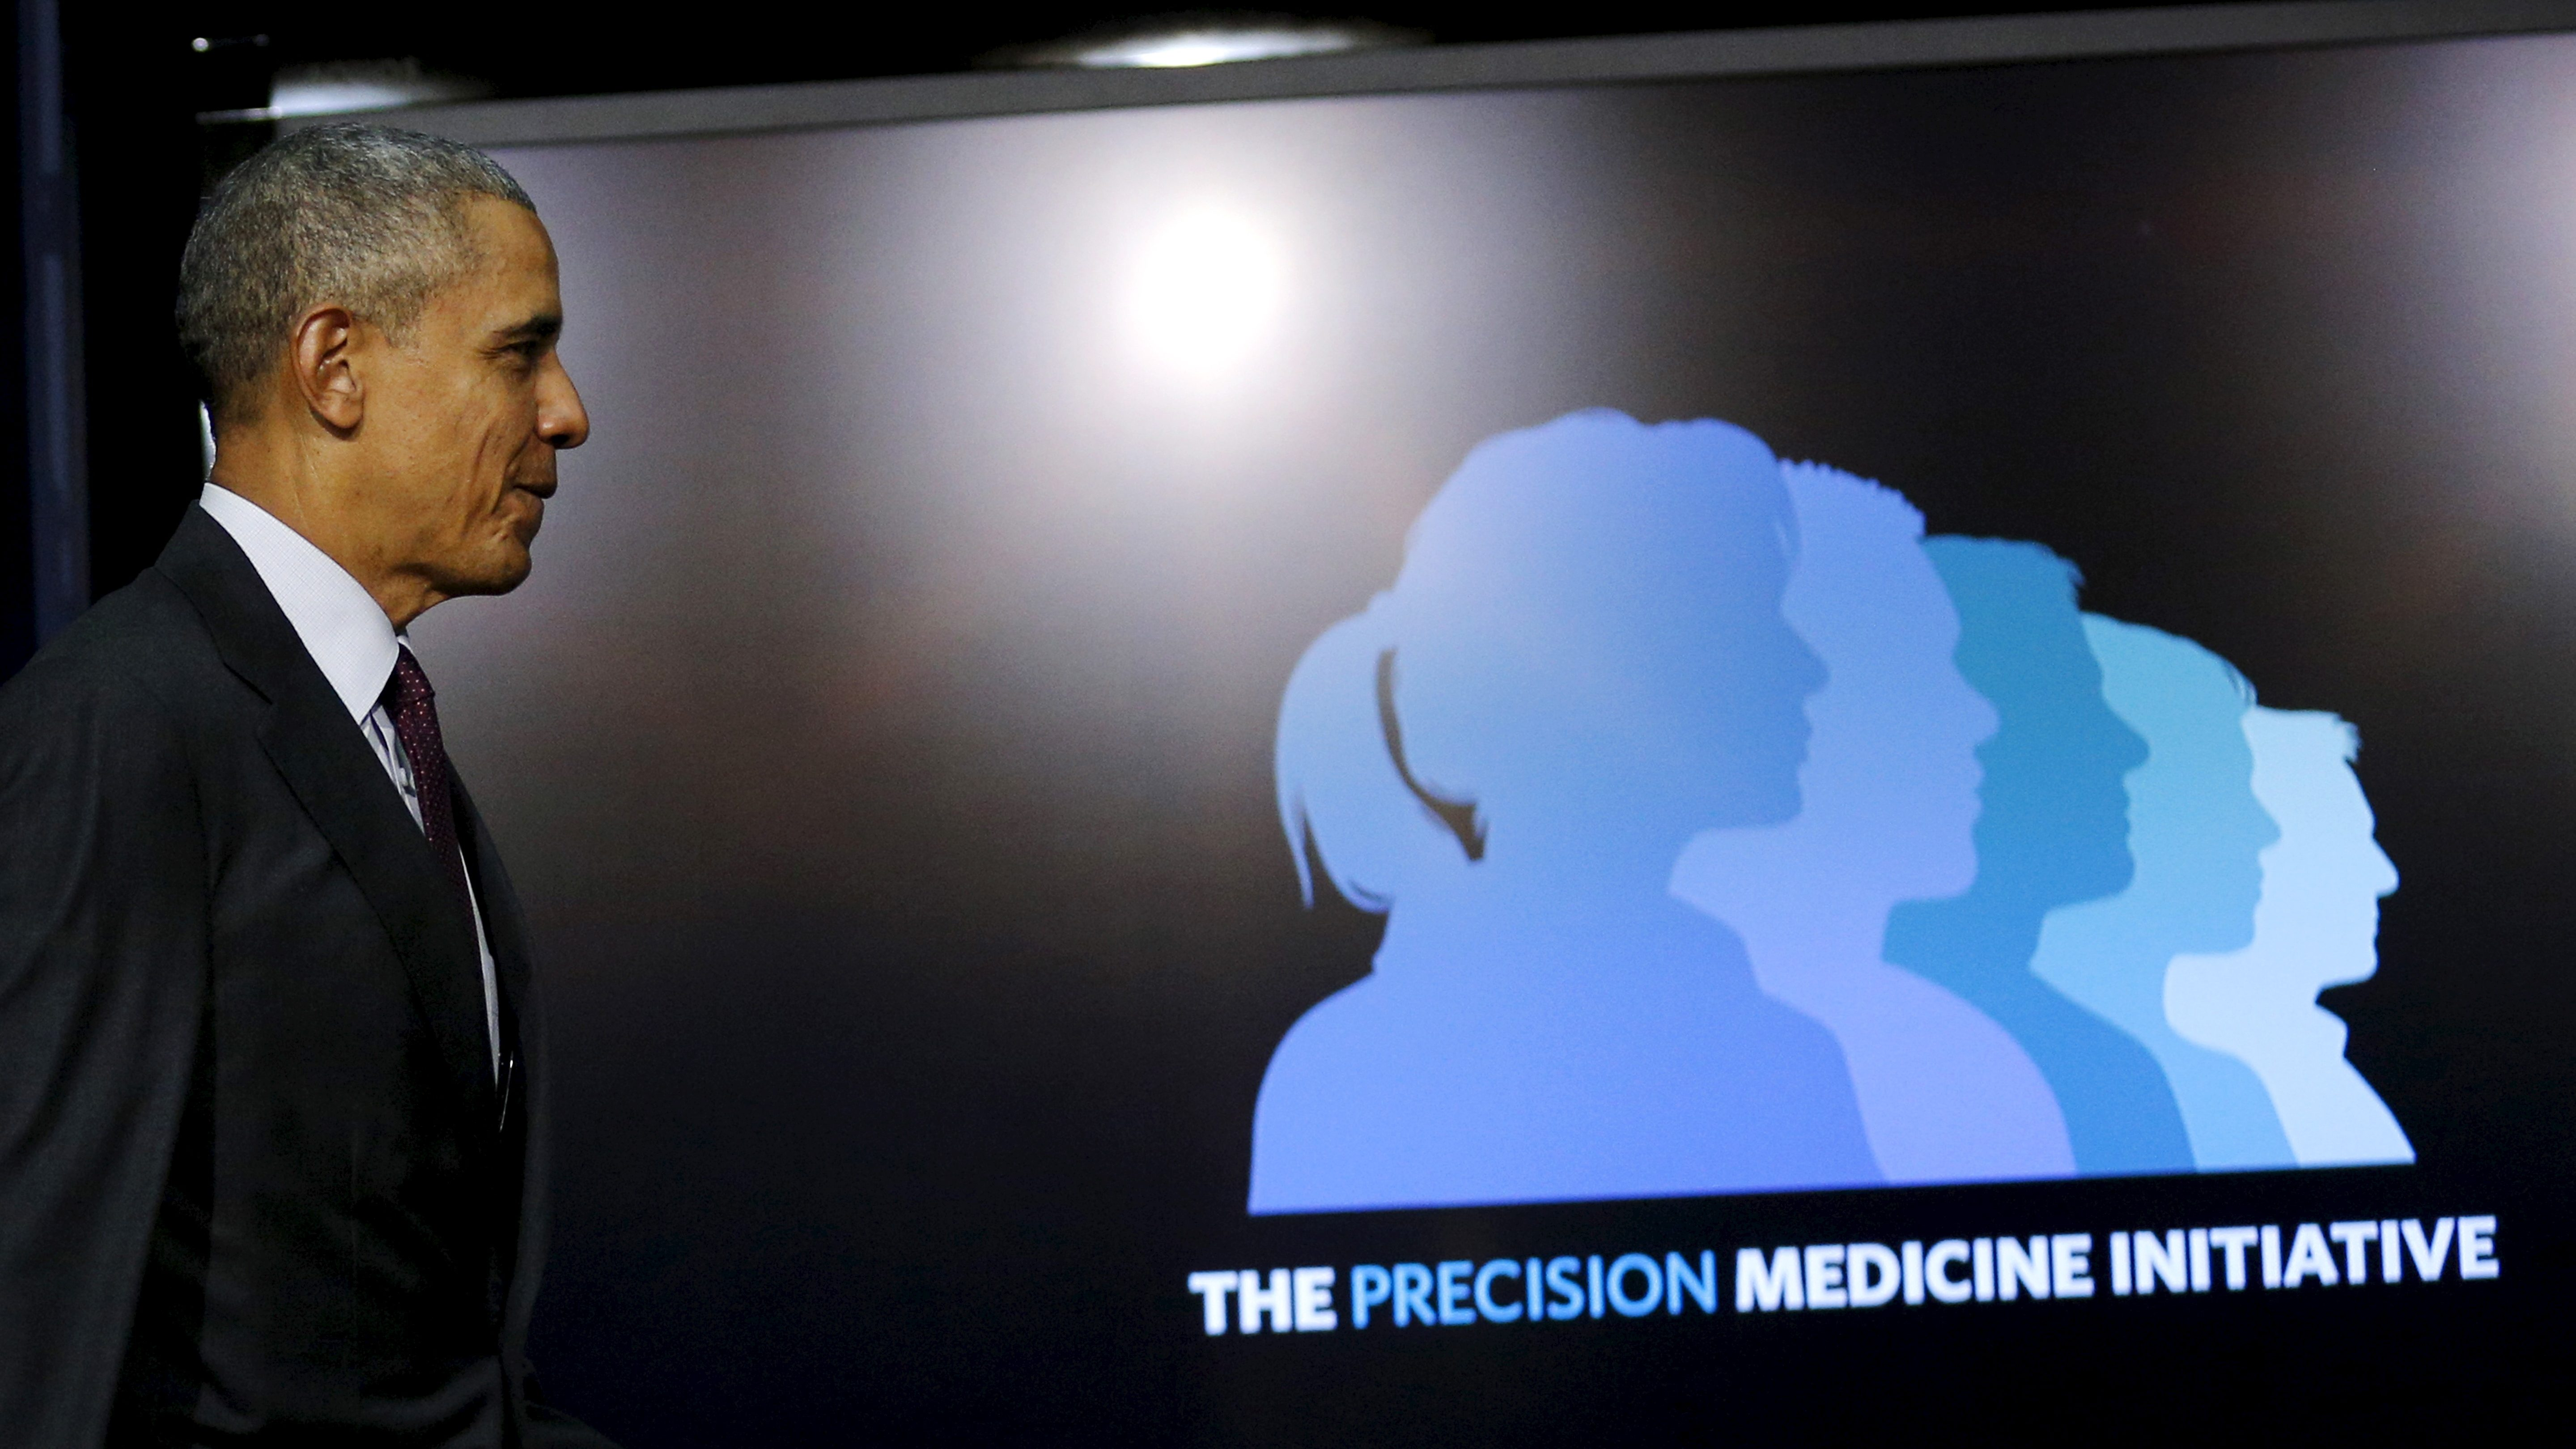 U.S. President Barack Obama arrives to participate in a panel discussion as part of the White House Precision Medicine Initiative (PMI) Summit in Washington February 25, 2016.